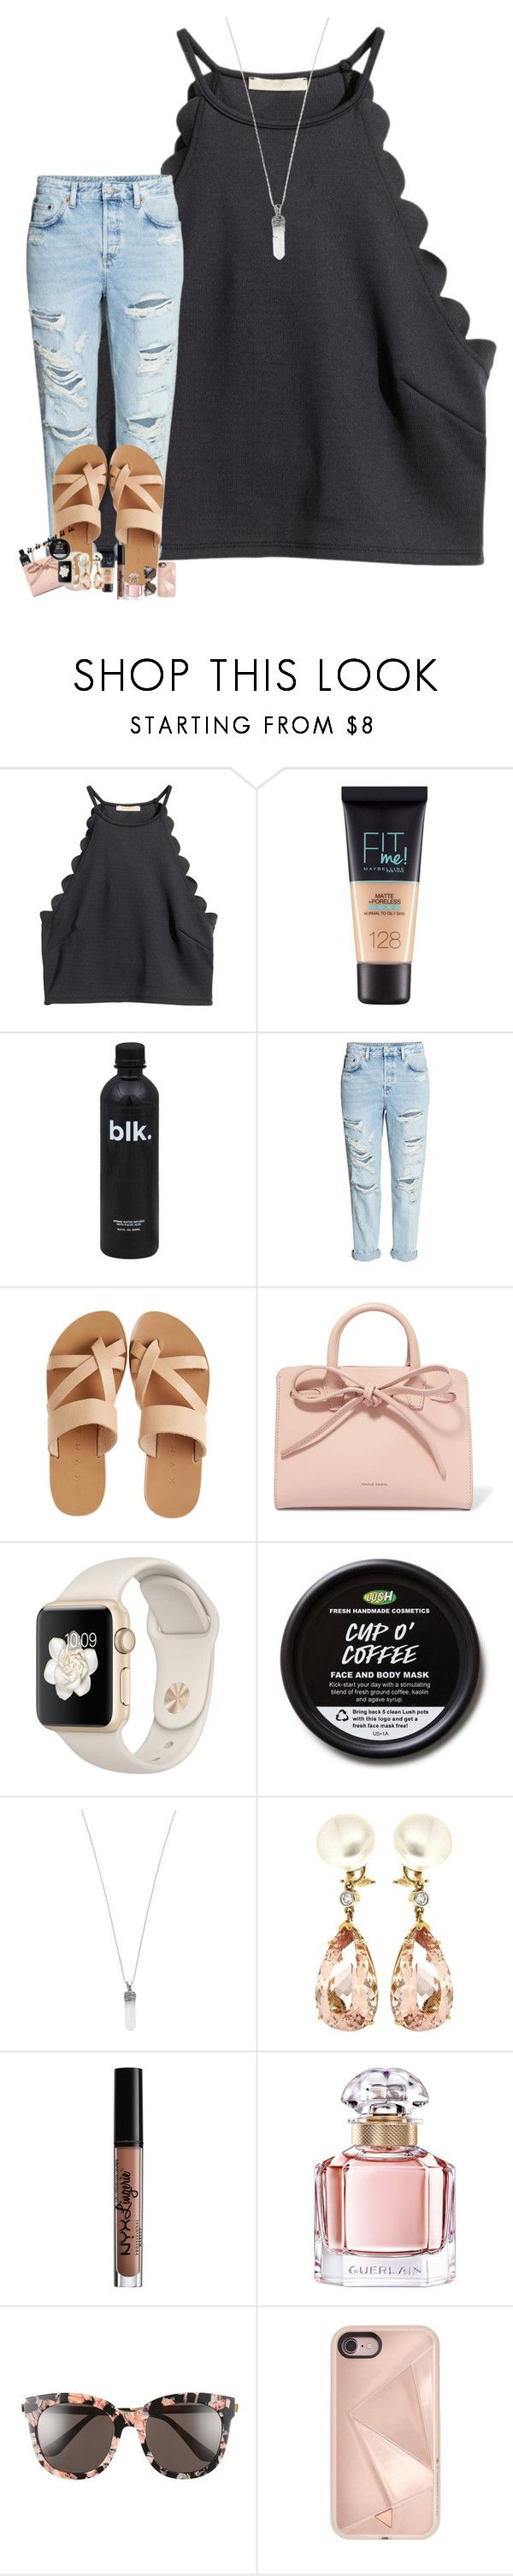 """""""wise men say, """"only fools rush in"""", but i can't help falling in love with you."""" by thatonelakyn ❤ liked on Polyvore featuring H&M, Maybelline, KYMA, Mansur Gavriel, Marc Jacobs, Valentin Magro, NYX, Guerlain, Gentle Monster and Rebecca Minkoff"""